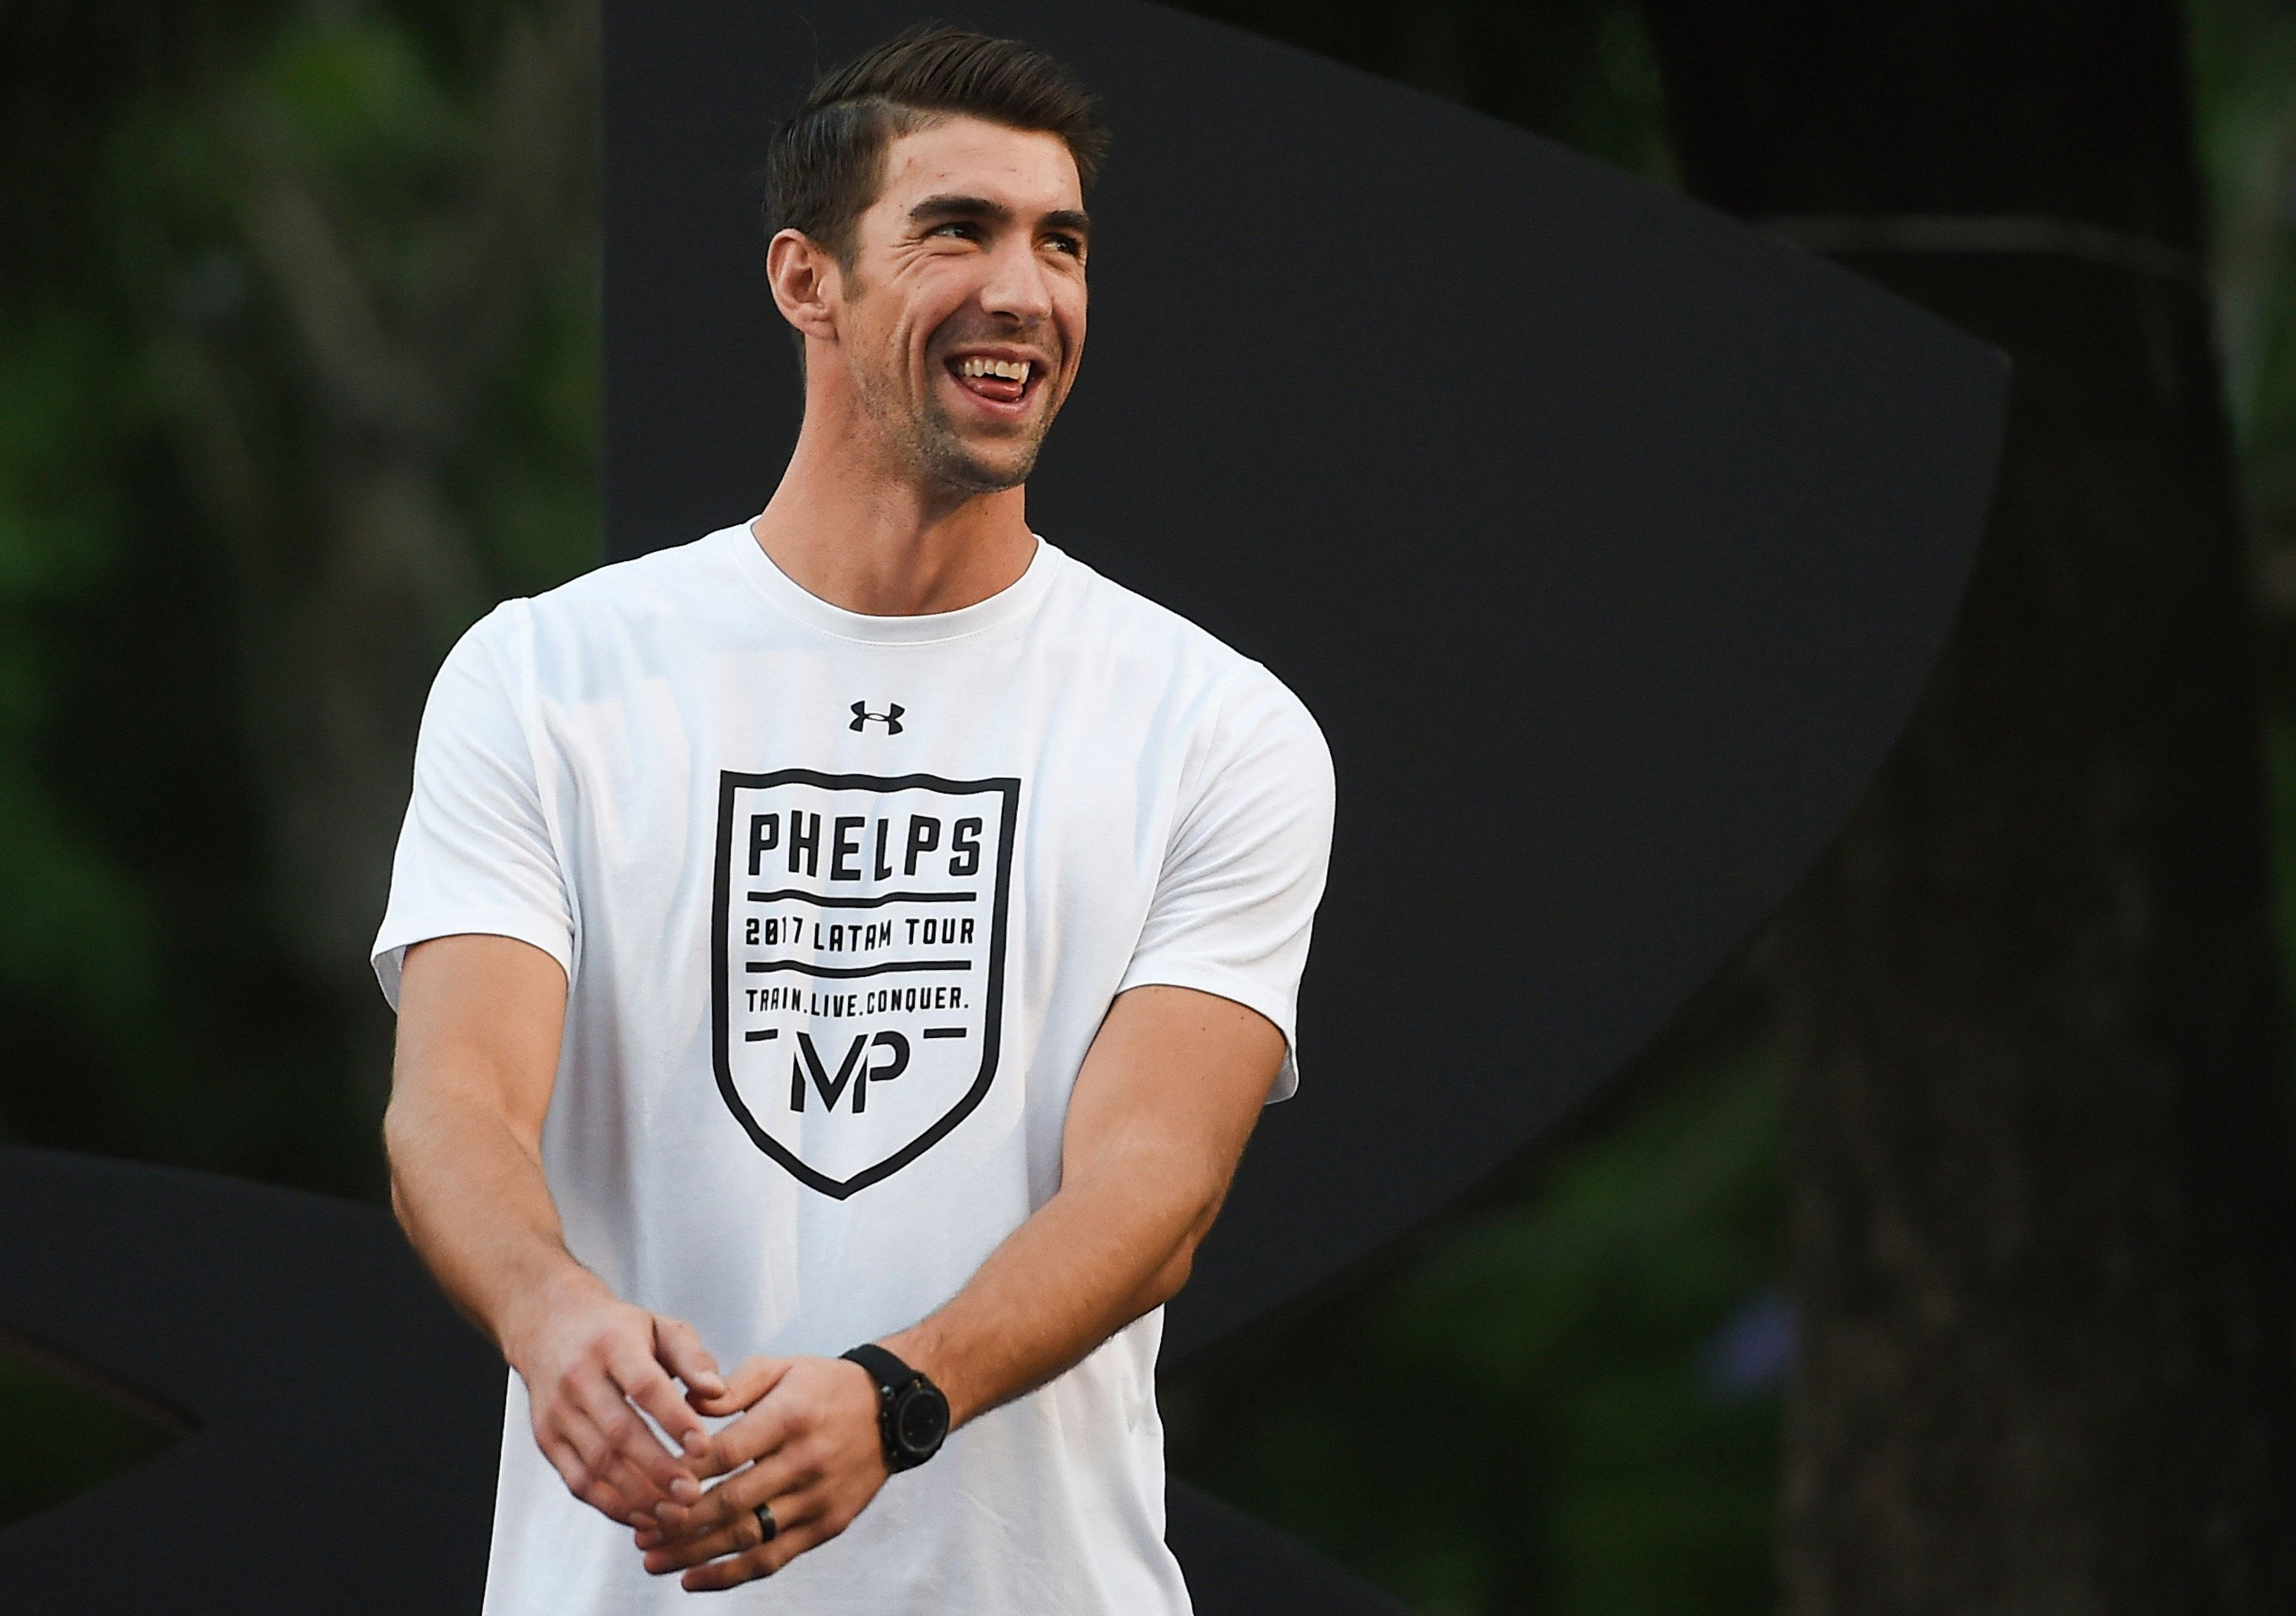 BUENOS AIRES, ARGENTINA - DECEMBER 07: Michael Phelps reacts during a visit to Argentina at El Rosedal Park on December 07, 2017 in Buenos Aires, Argentina. (Photo by Marcelo Endelli/Getty Images)